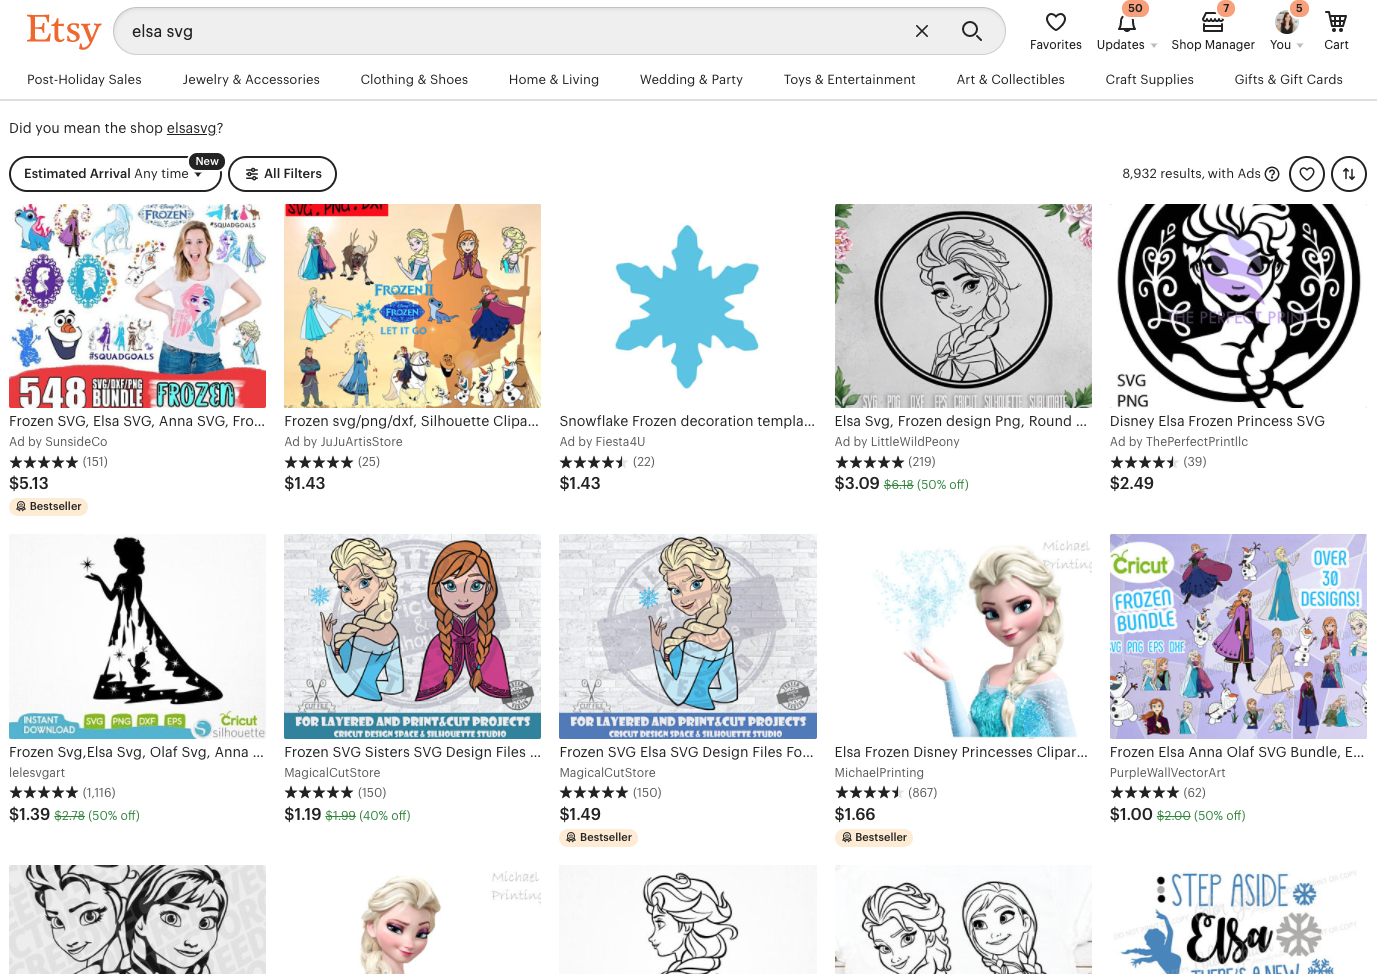 Screenshot of Etsy with Elsa (Frozen) images